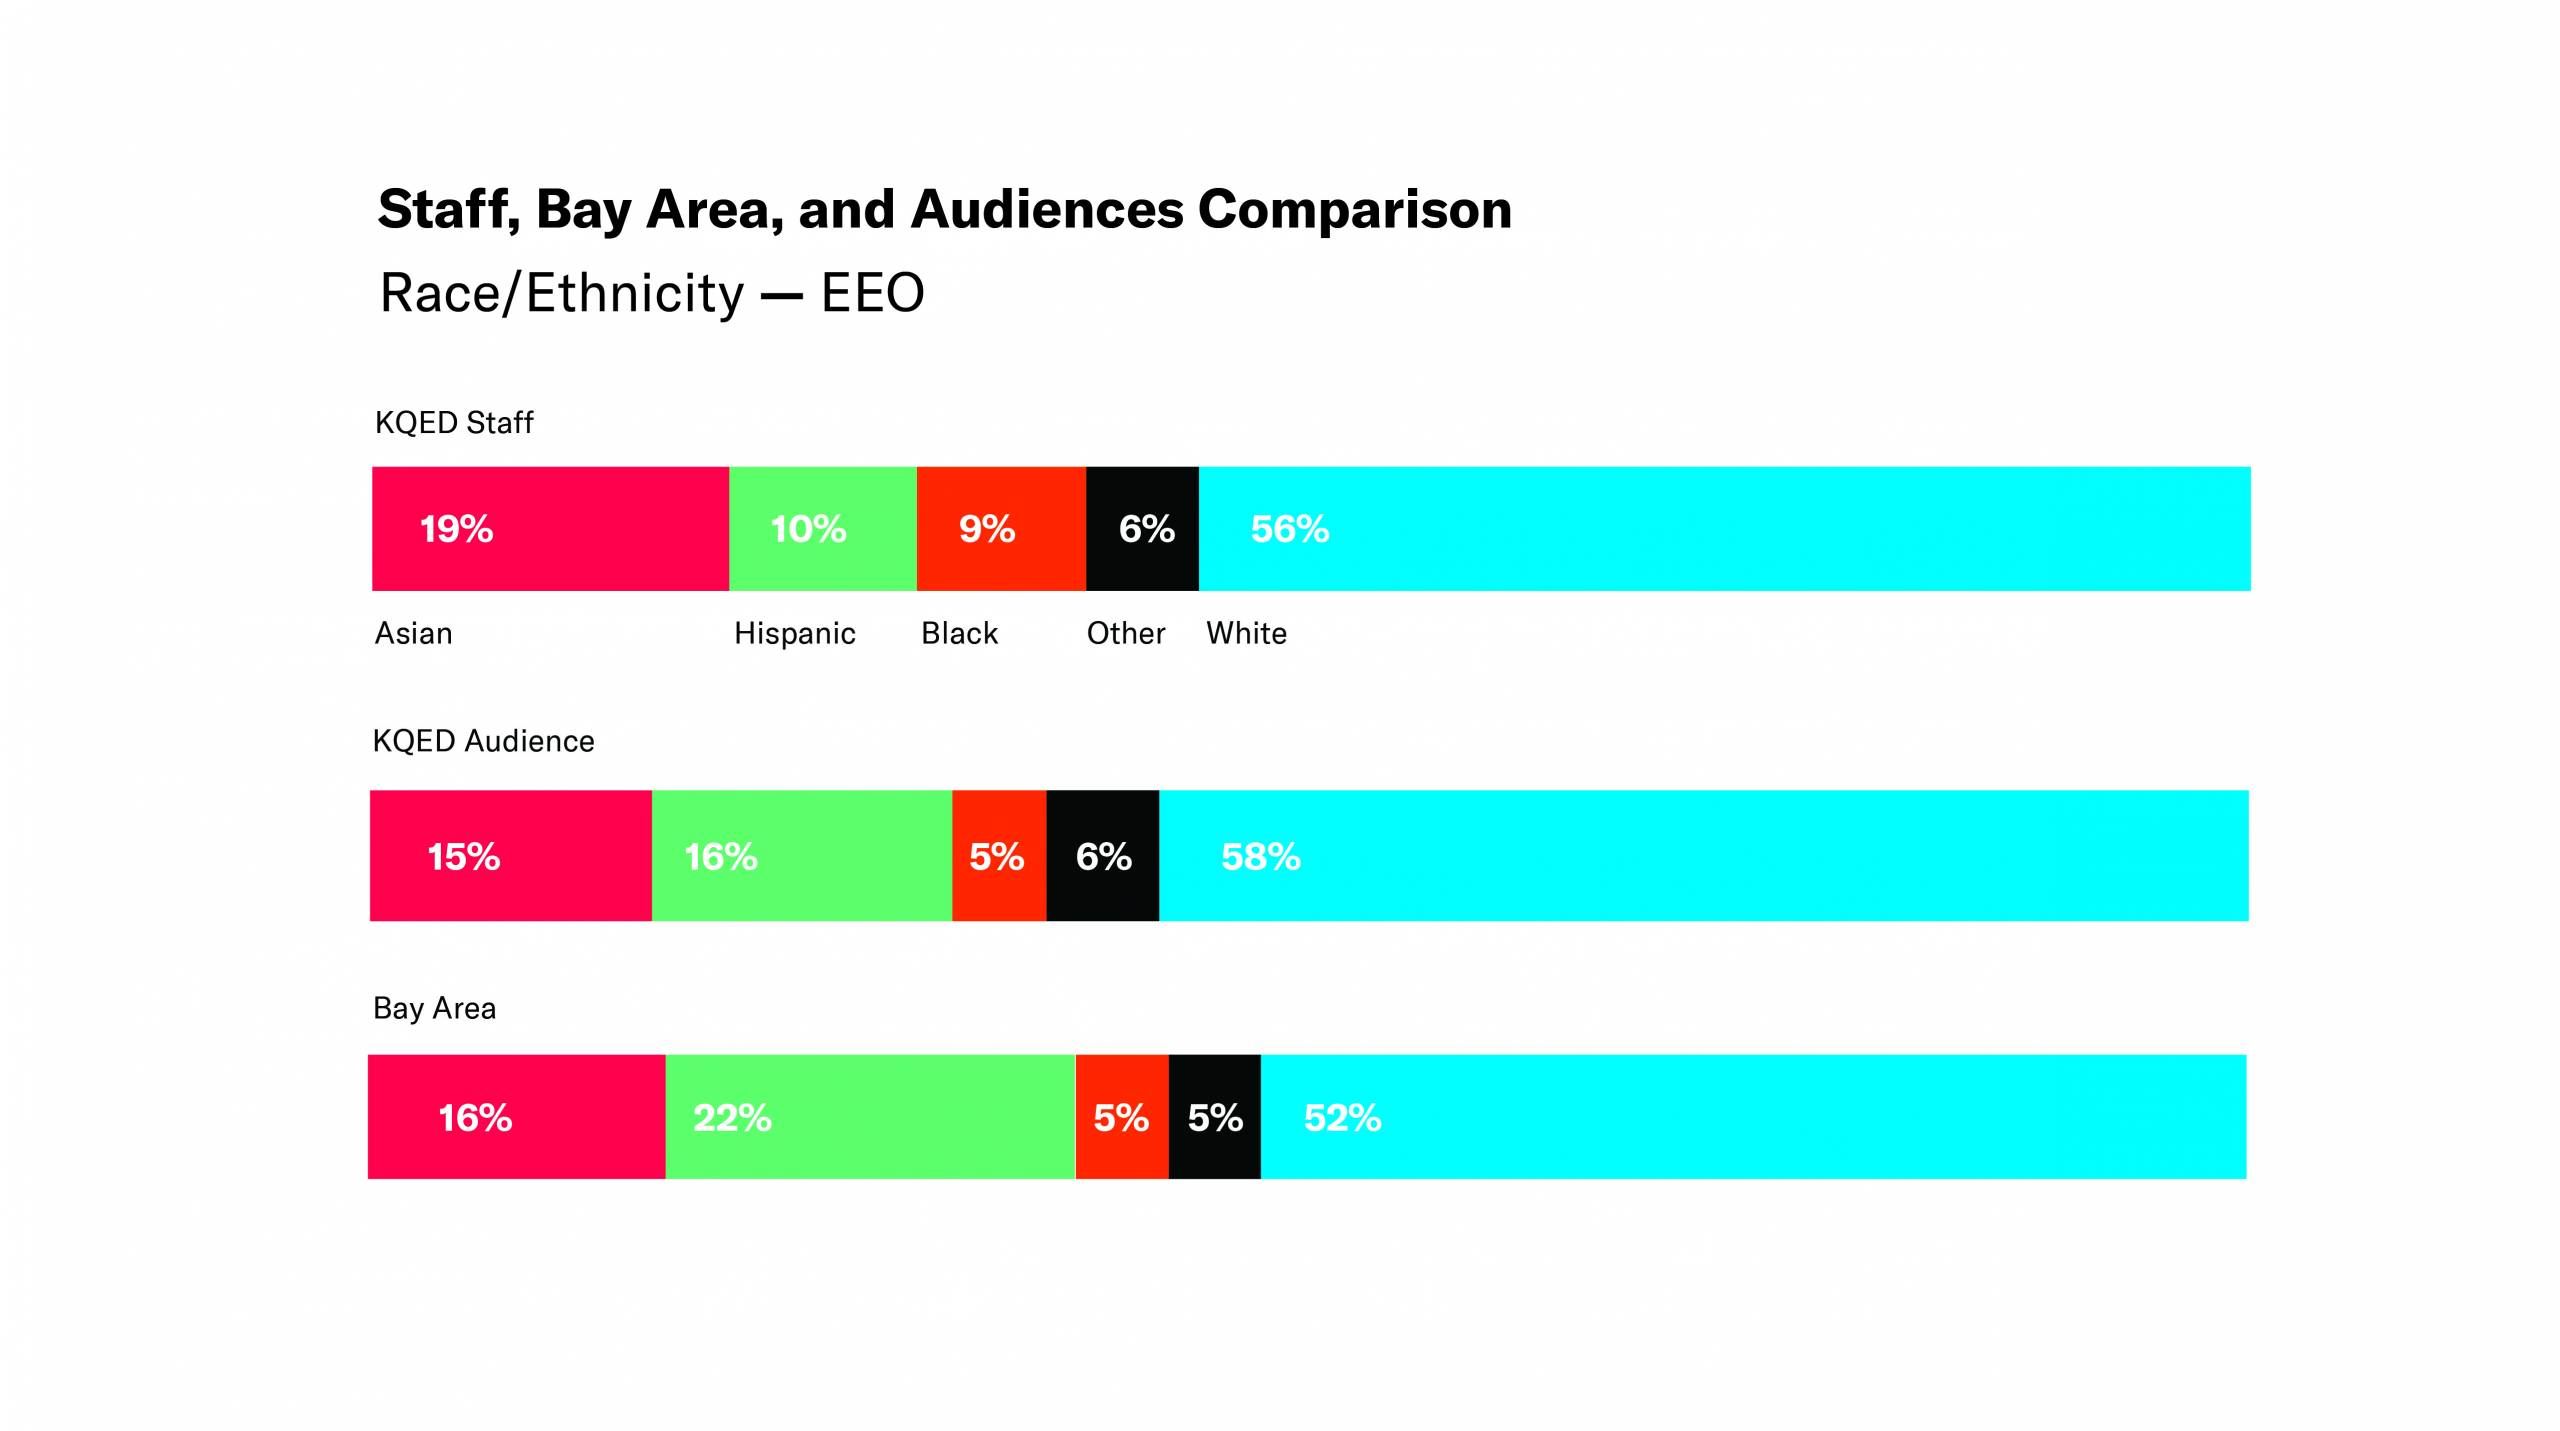 Horizontal Bar Chart - Staff, Bay Area, and Audiences Comparison - Race/ethnicity